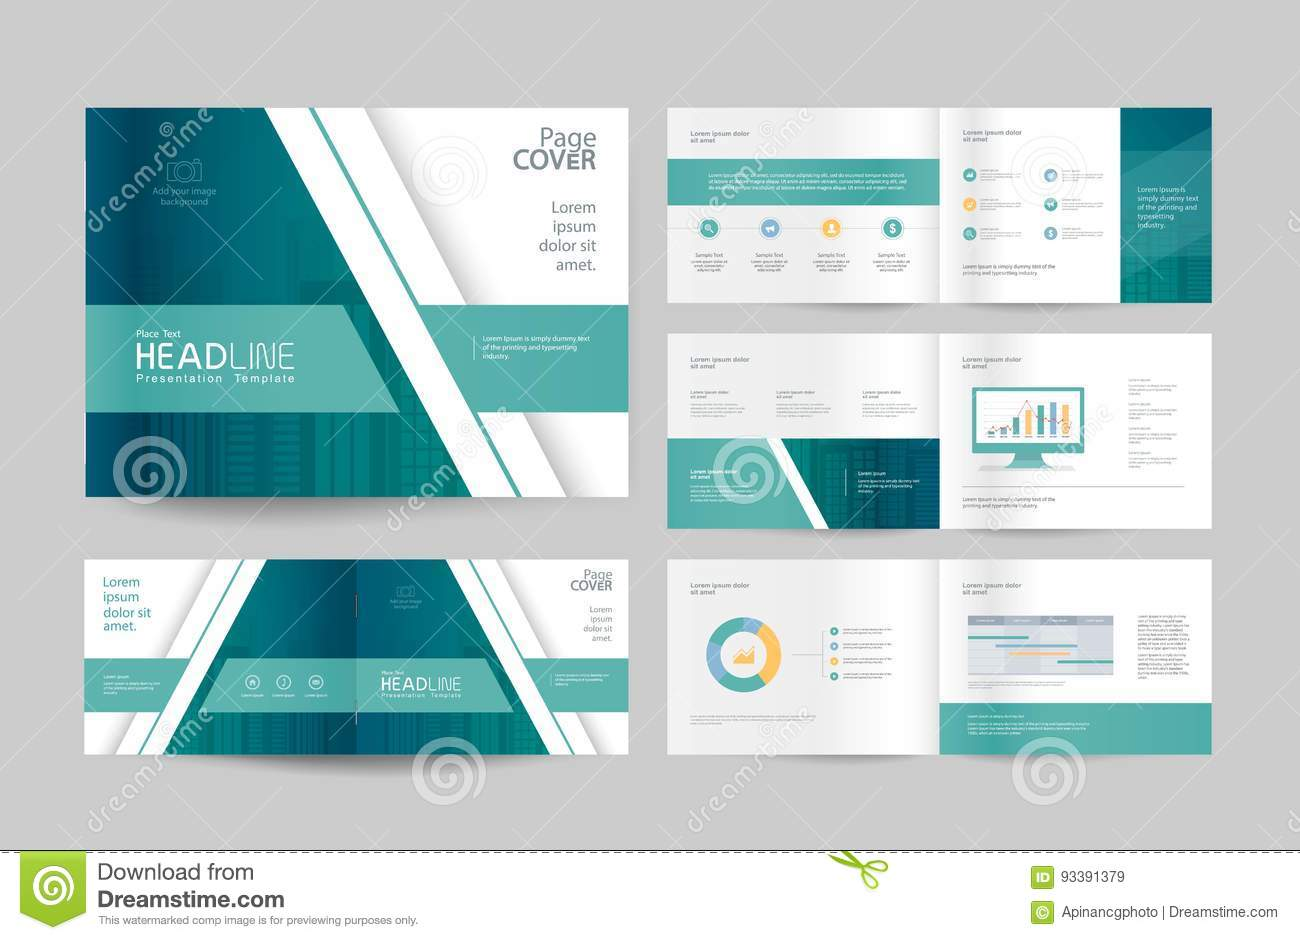 Company profile design template free download juvecenitdelacabrera company wajeb